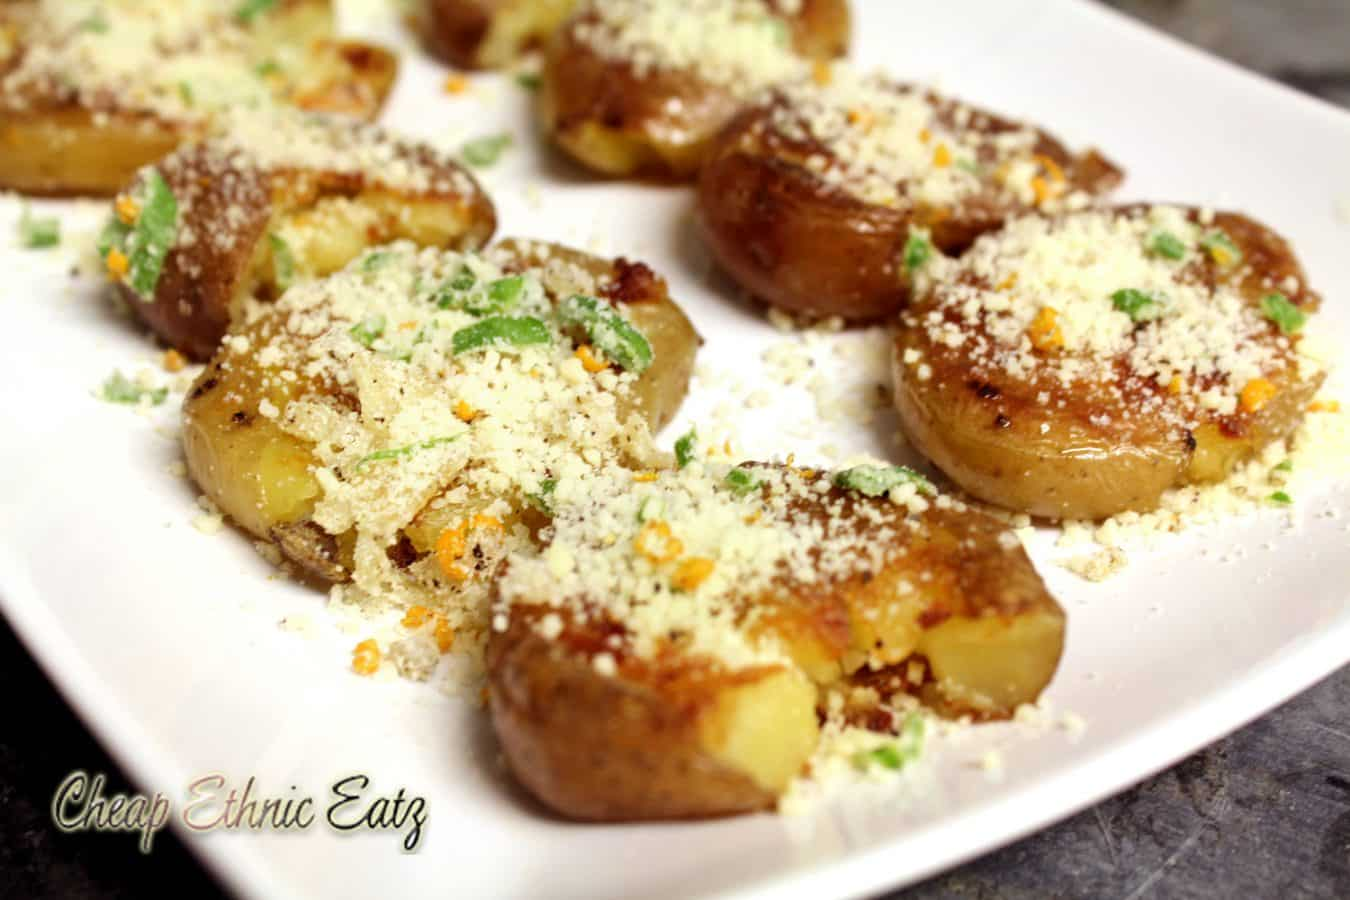 Pan Fried Smashed Potatoes 2